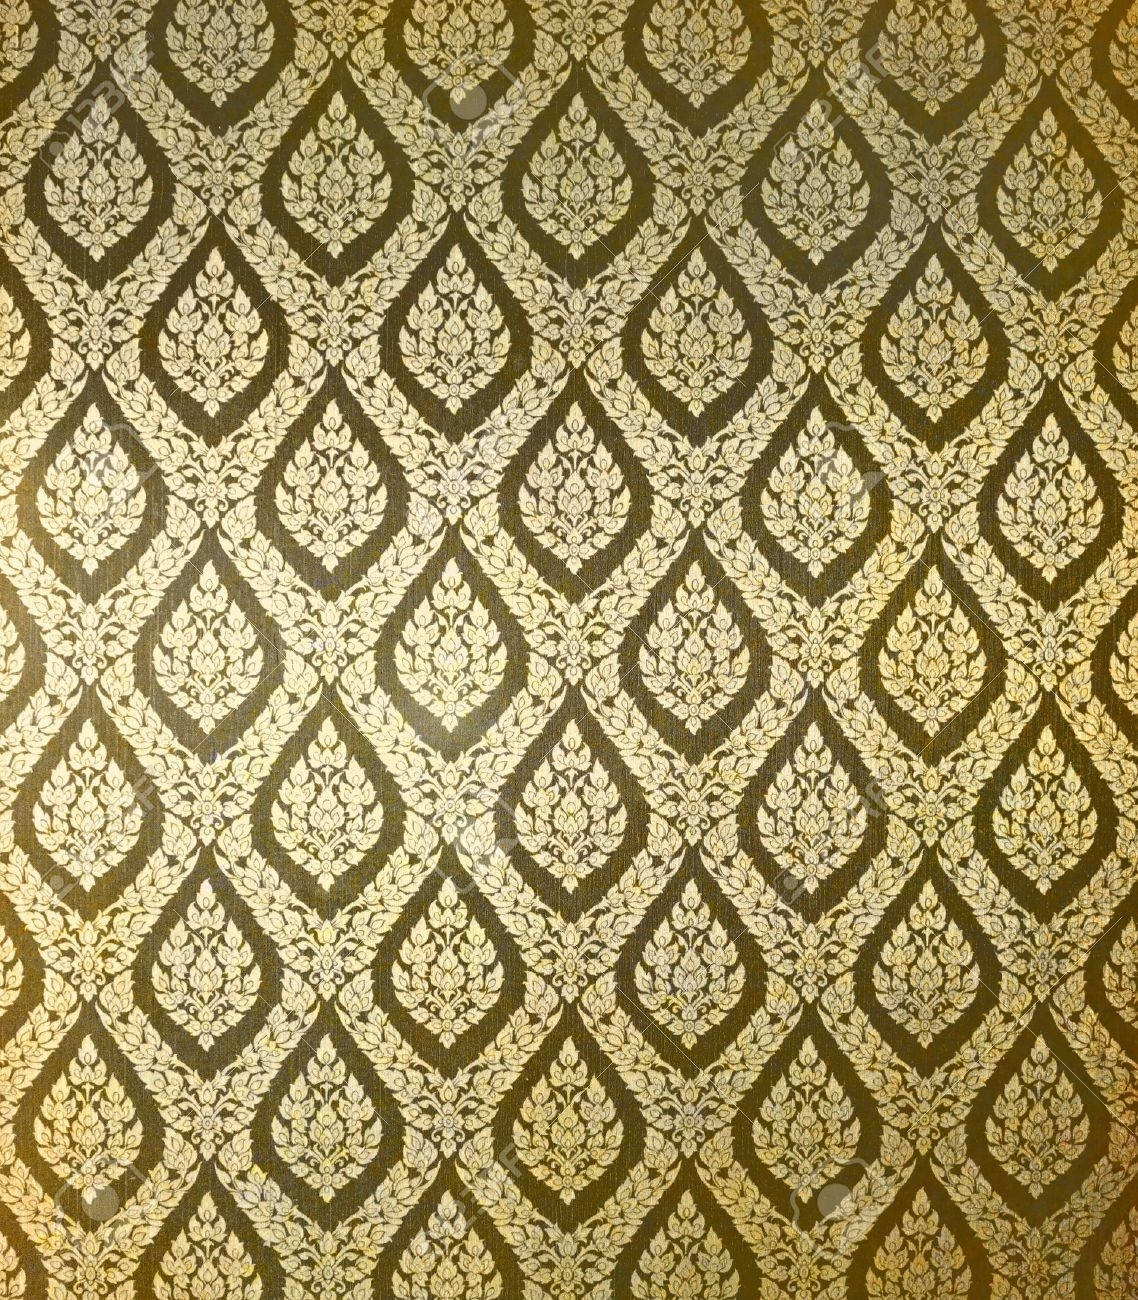 Thai Art Wall Pattern For Background Stock Photo, Picture And Regarding Best And Newest Thai Fabric Wall Art (View 12 of 15)